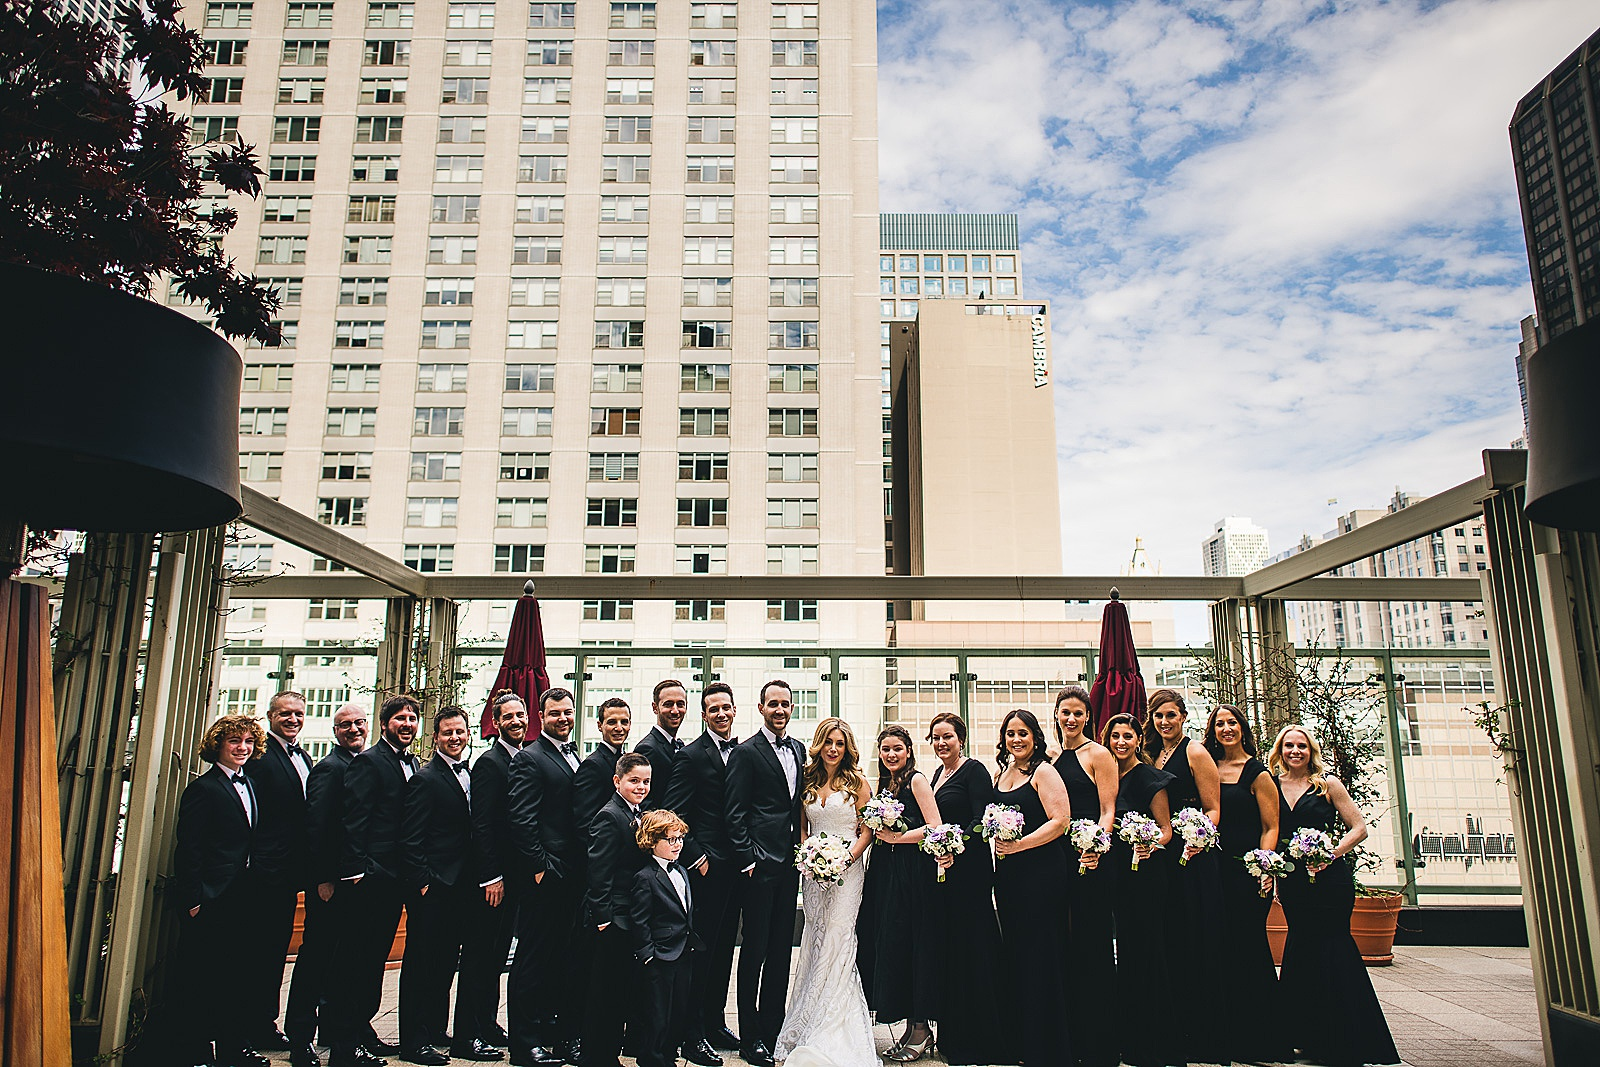 26 bridal party at peninsula hotel - Susie + Eric's Jewish Wedding at the Peninsula Hotel in Chicago